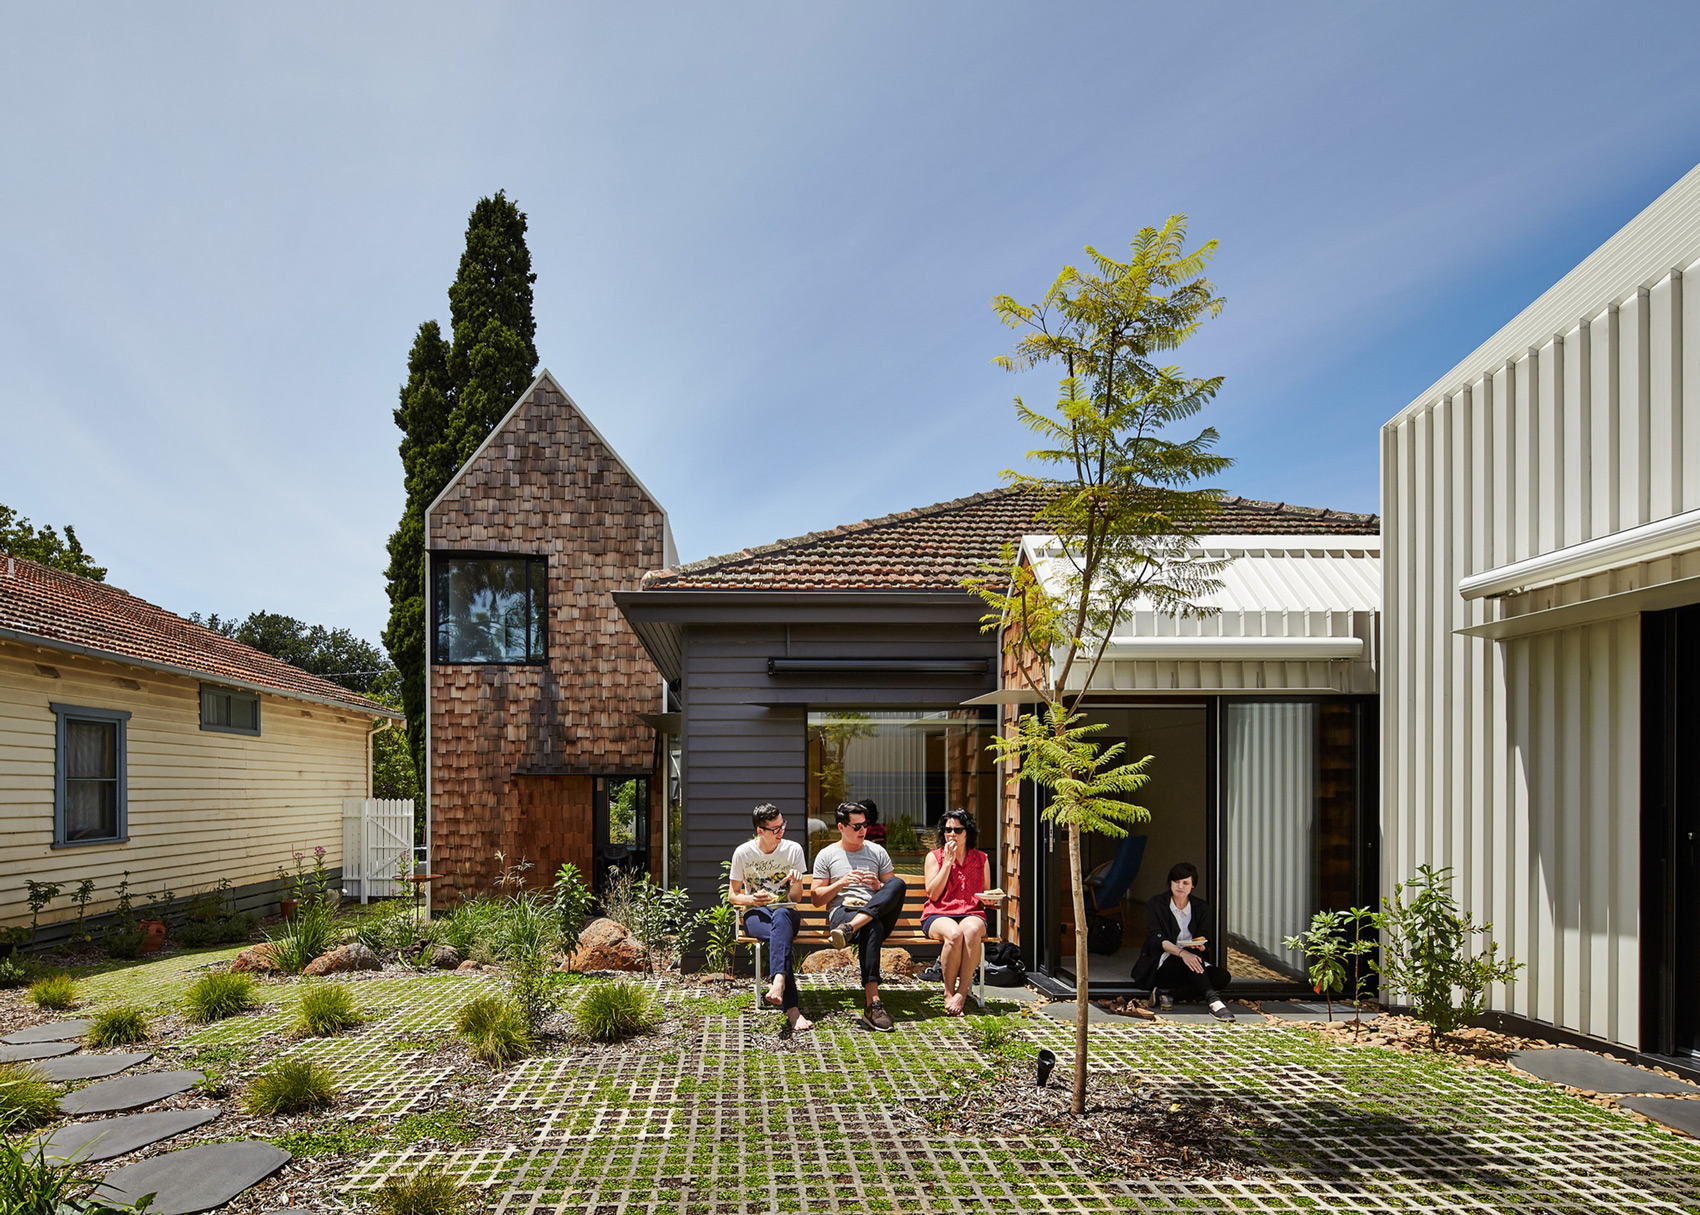 Tower House / Andrew Maynard Architects (26)